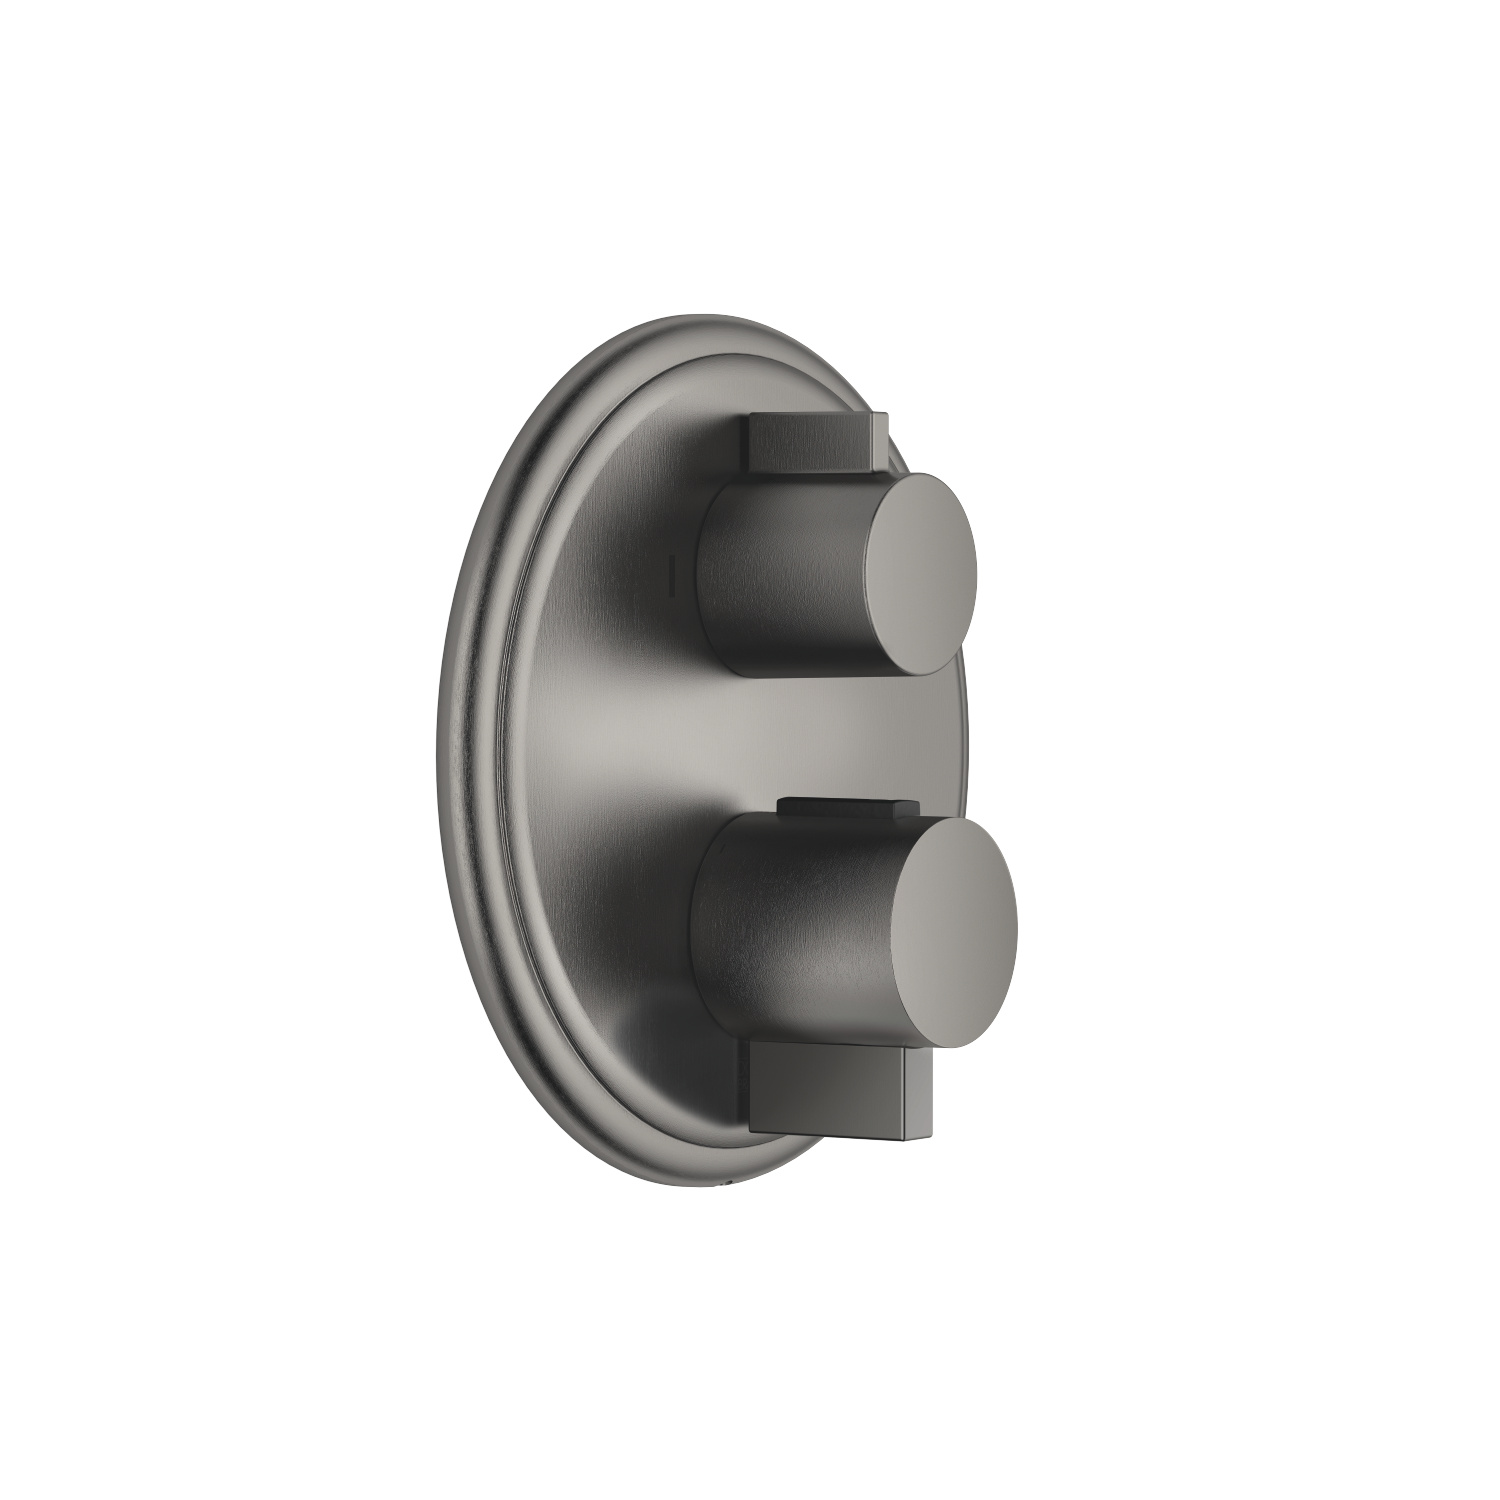 Concealed thermostat with two function volume control - Dark Platinum matt